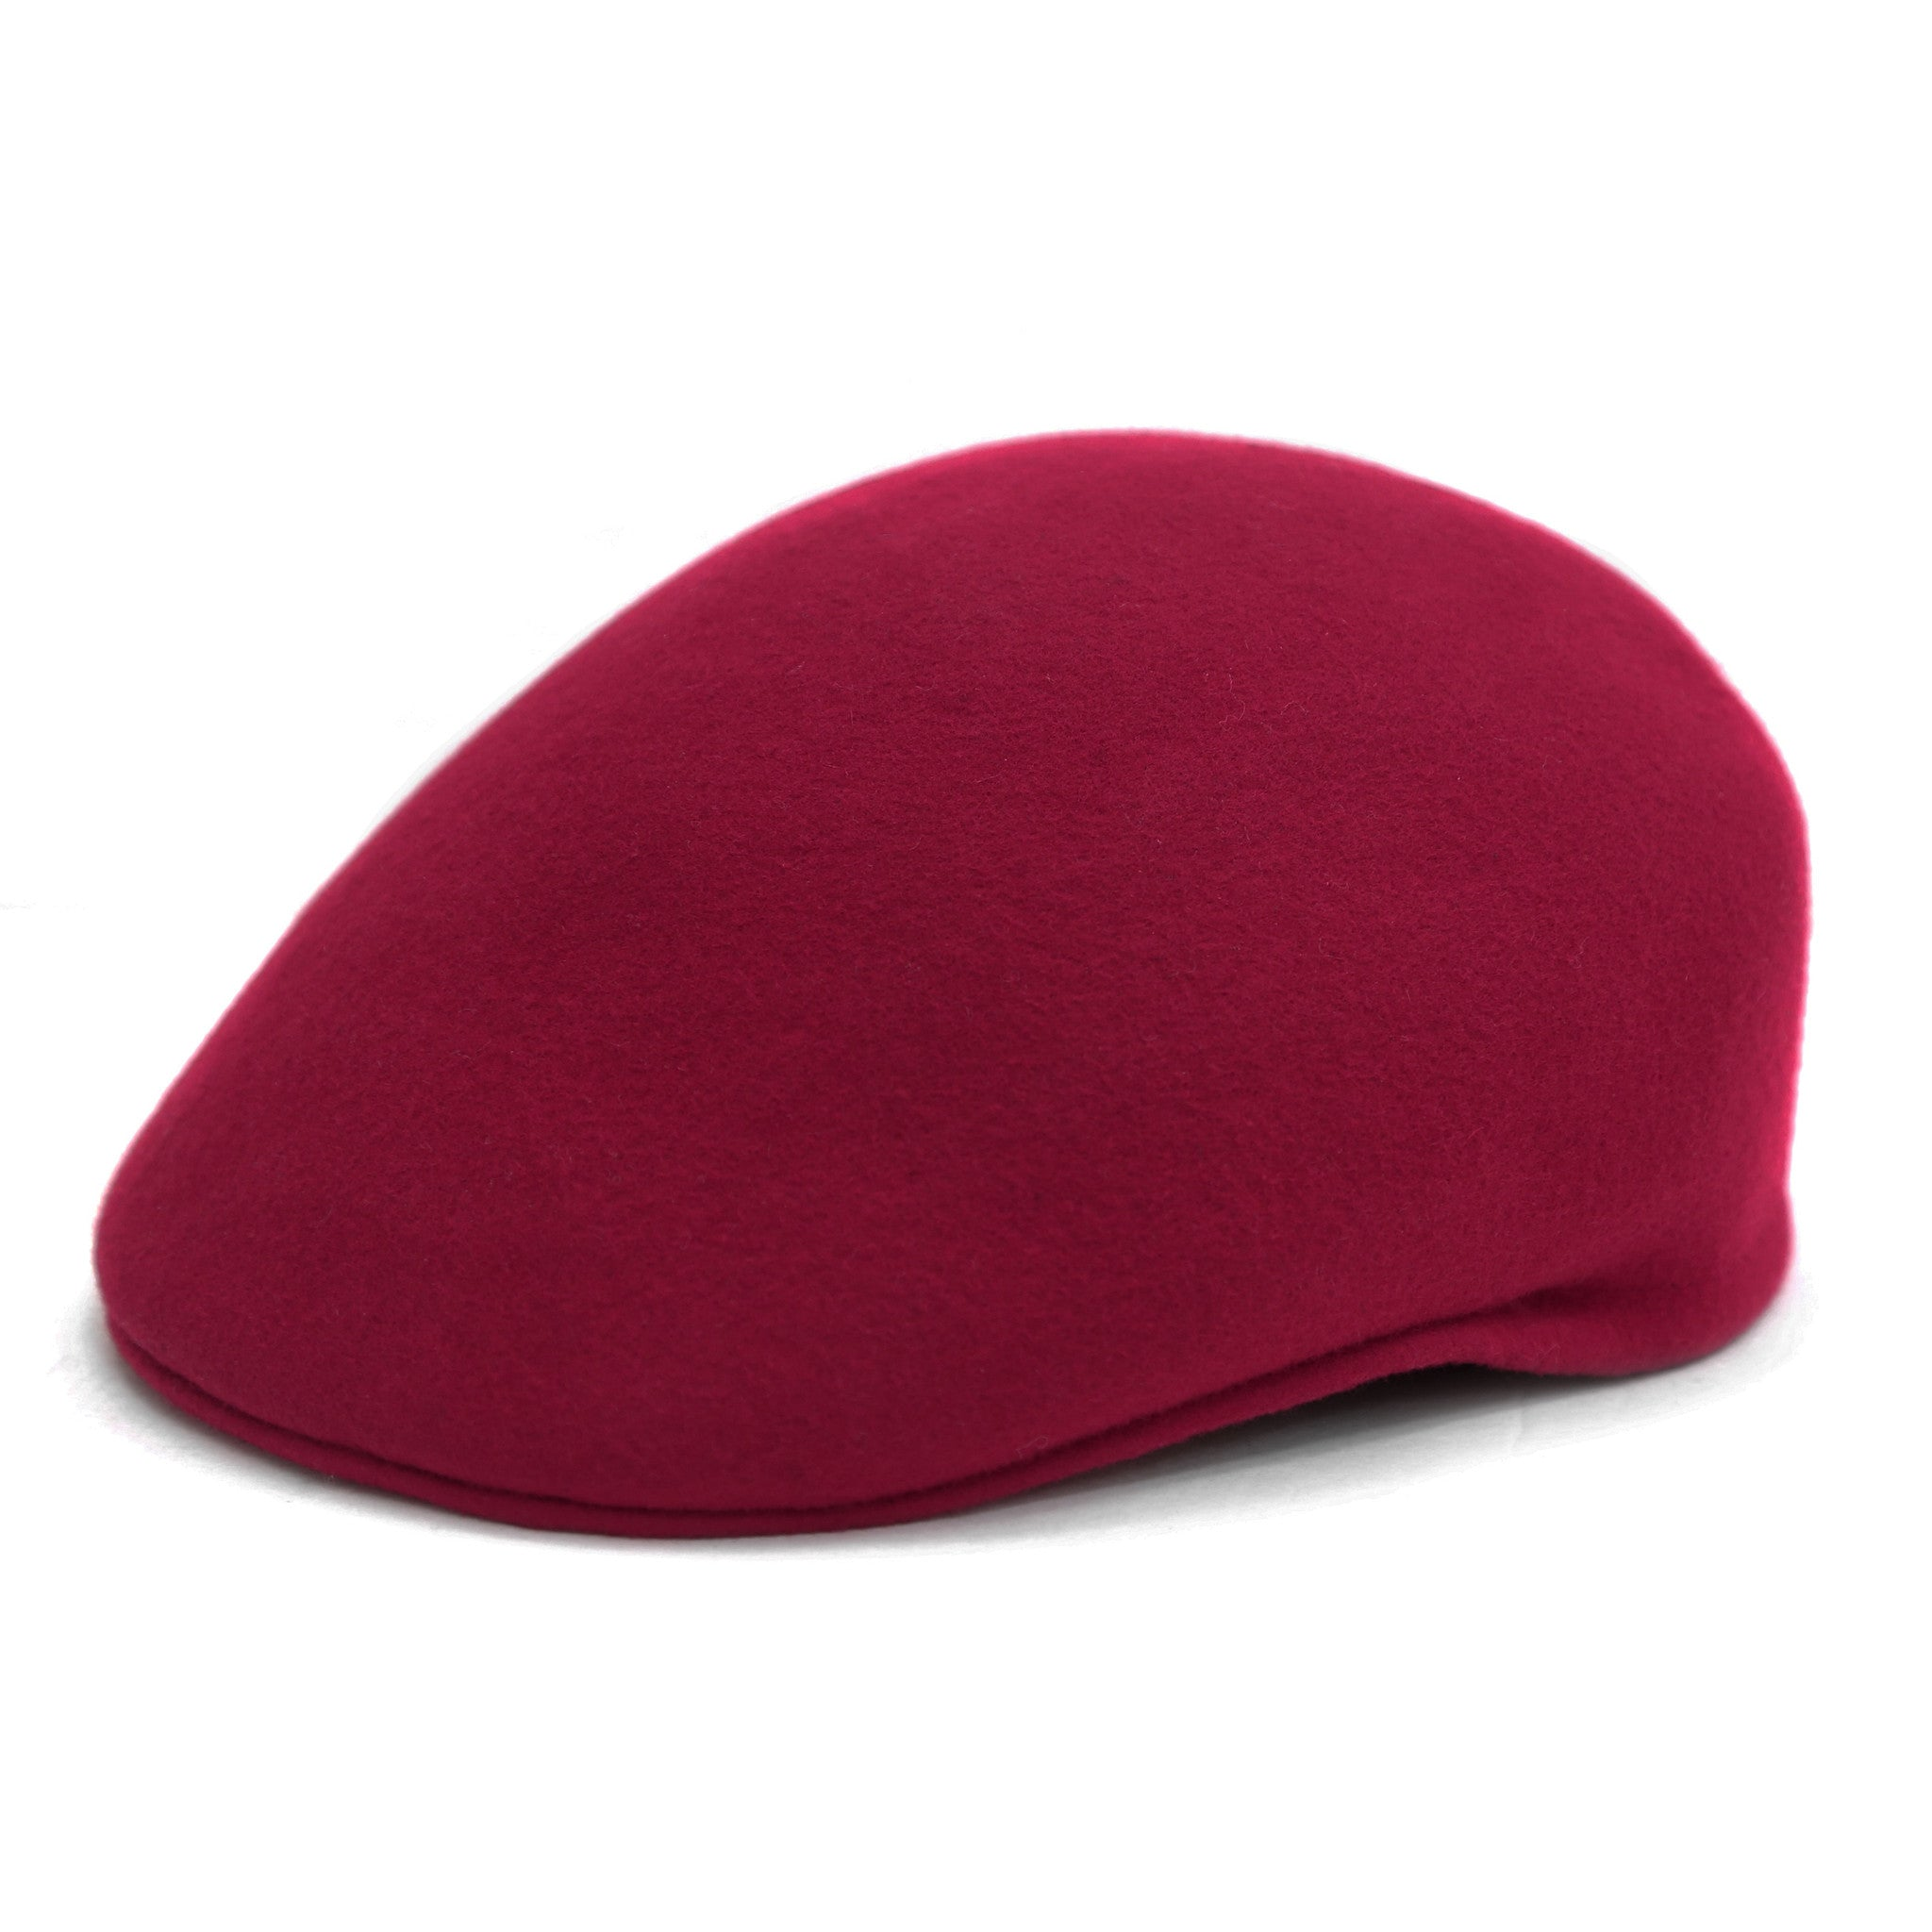 ferrecci unisex premium wool light burgundy english hat